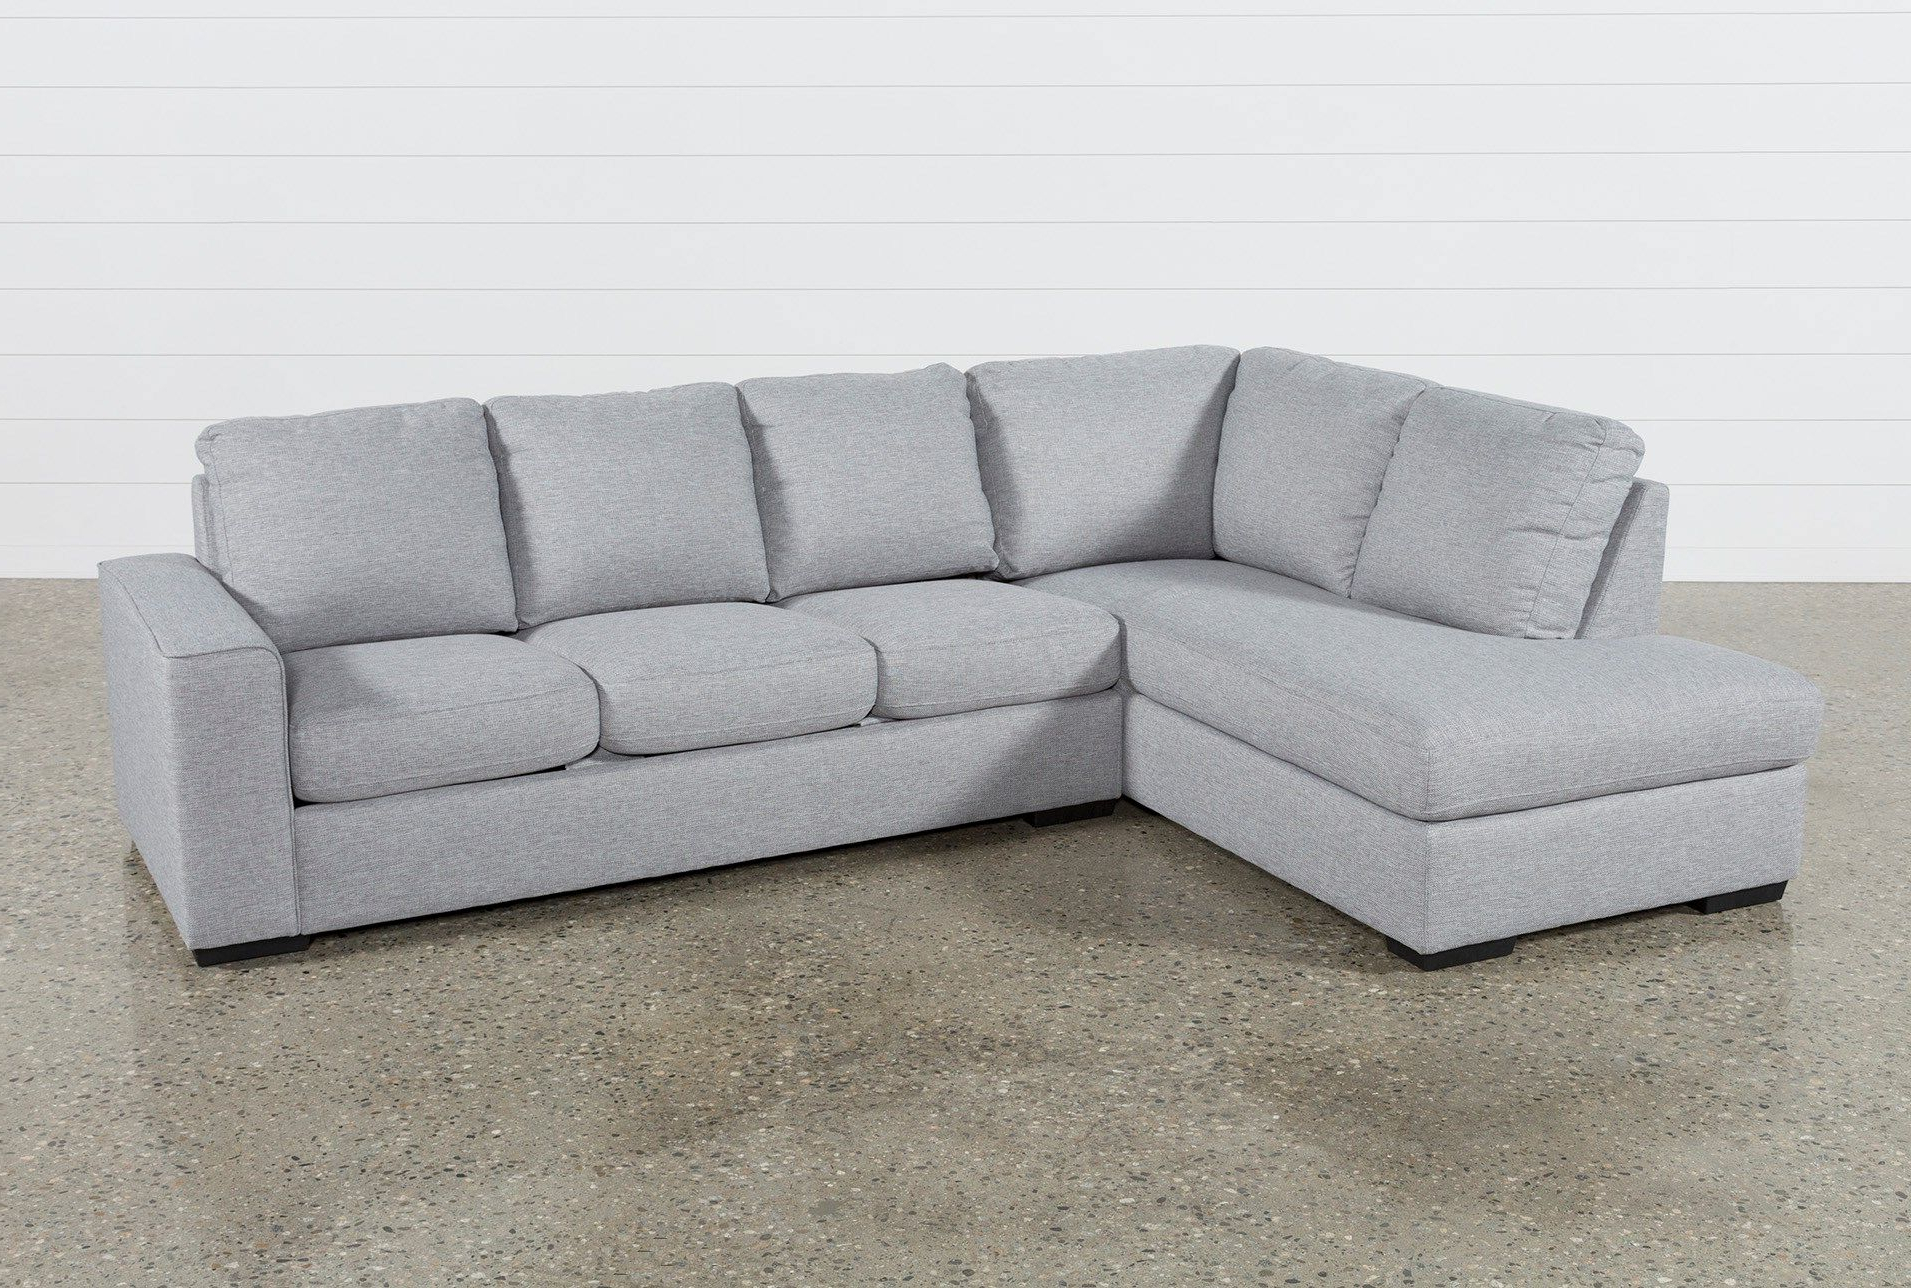 Fashionable Lucy Grey 2 Piece Sectional W/laf Chaise In  (View 7 of 20)